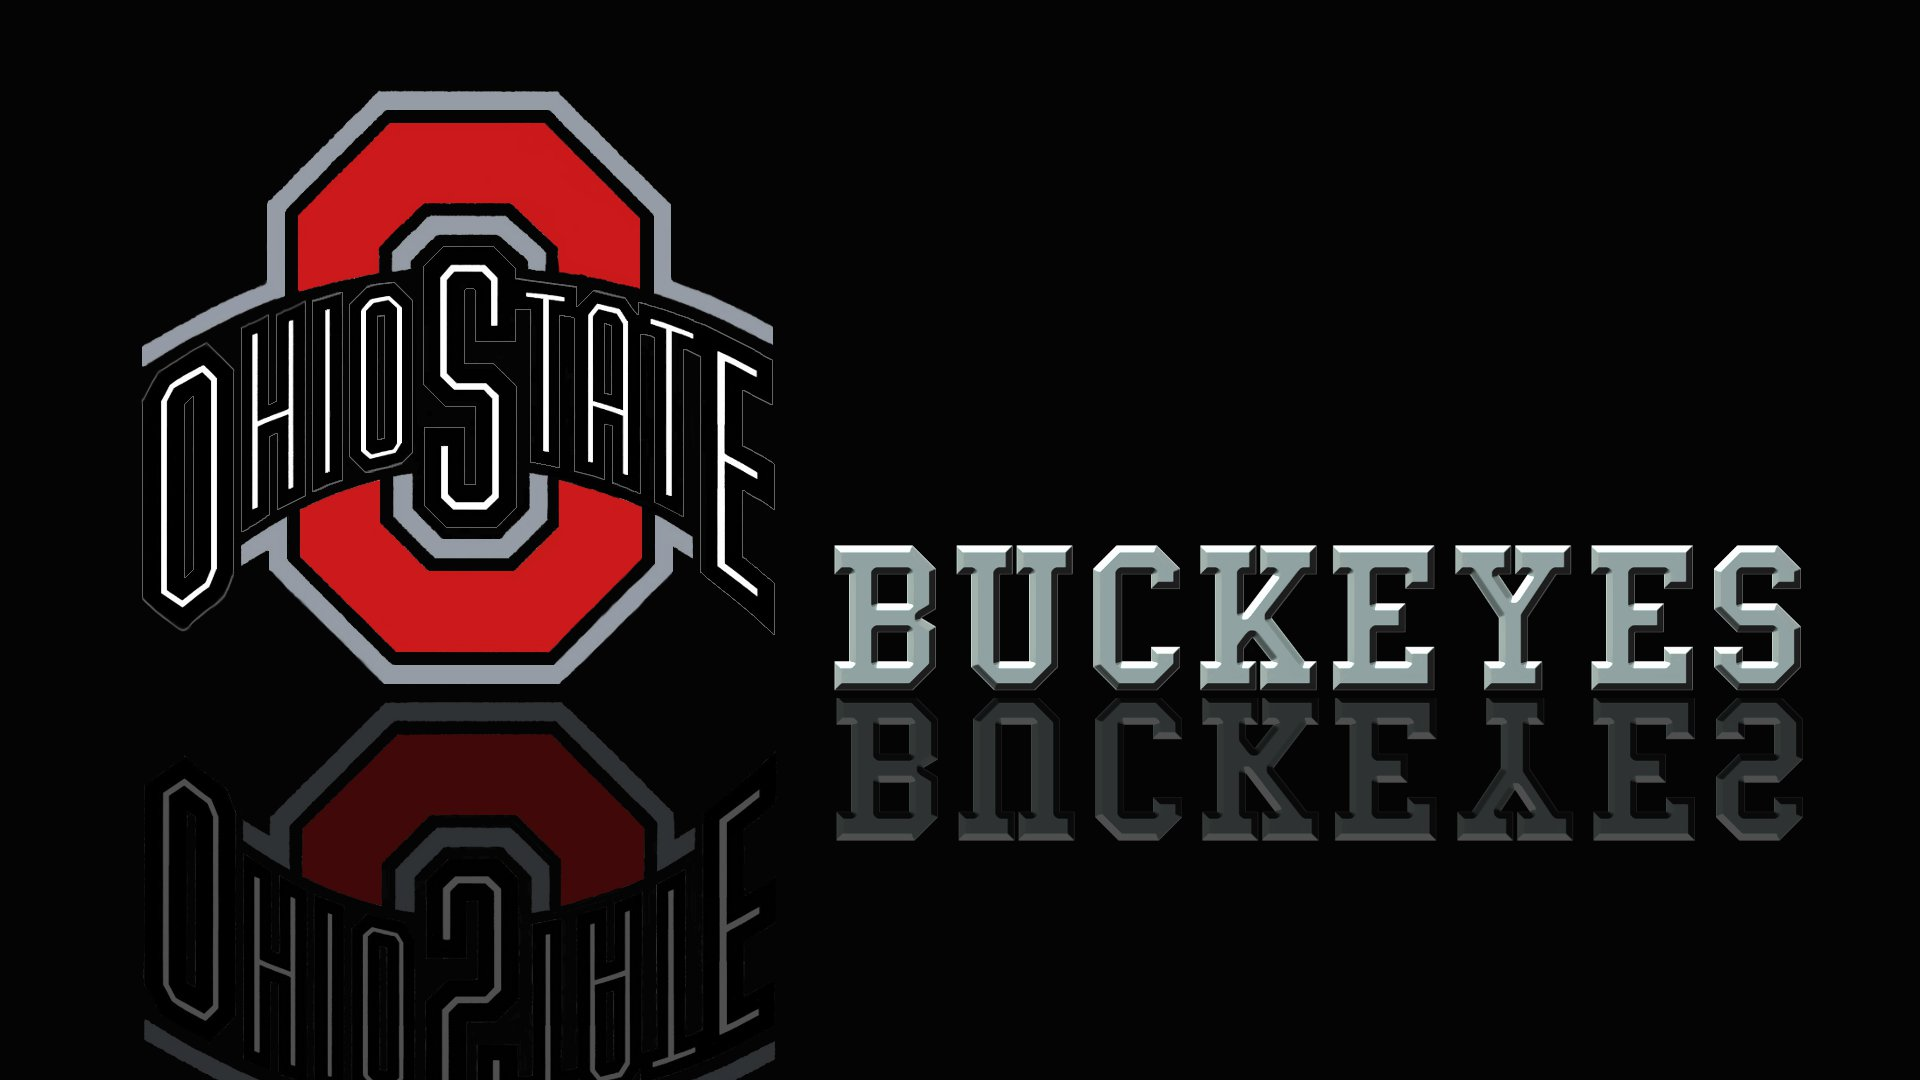 Ohio State Buckeyes Pictures Best HD Wallpapers   Full HD Wallpapers 1920x1080